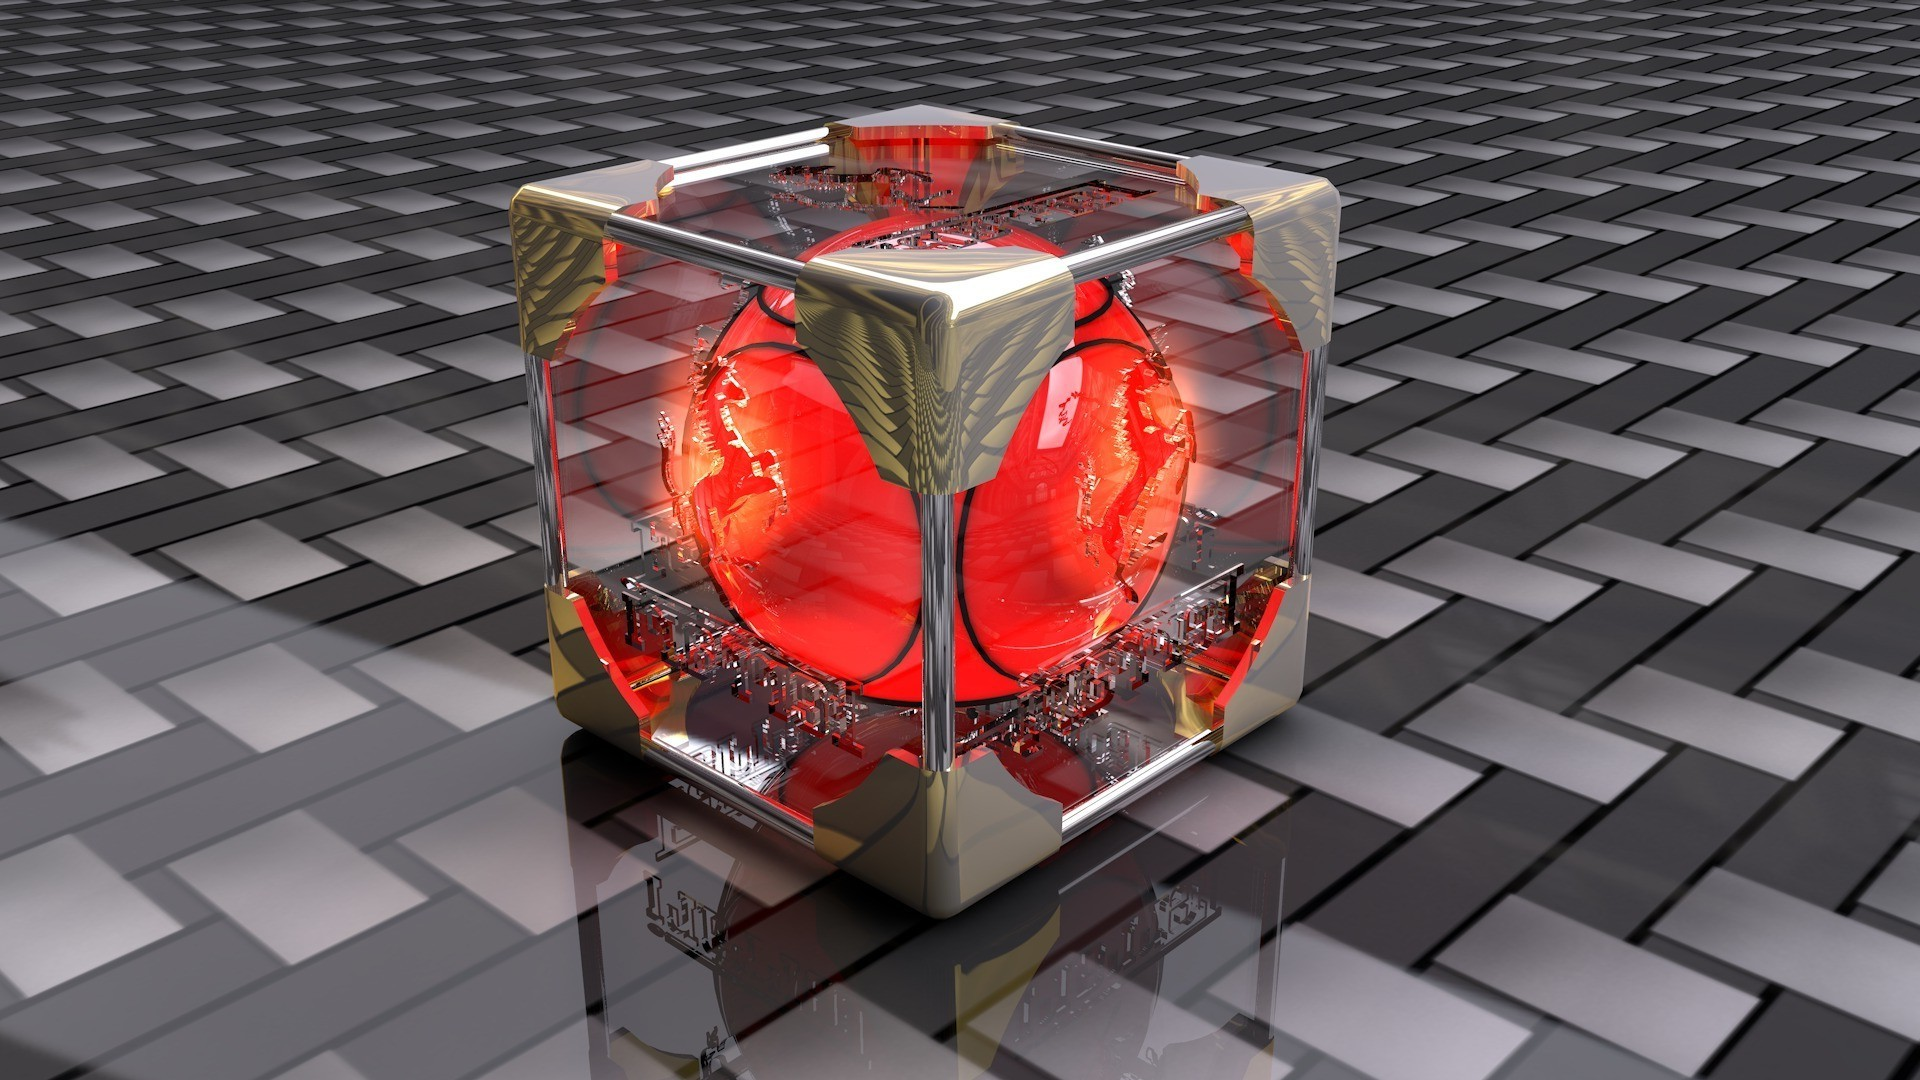 The red ball is placed in a transparent cube